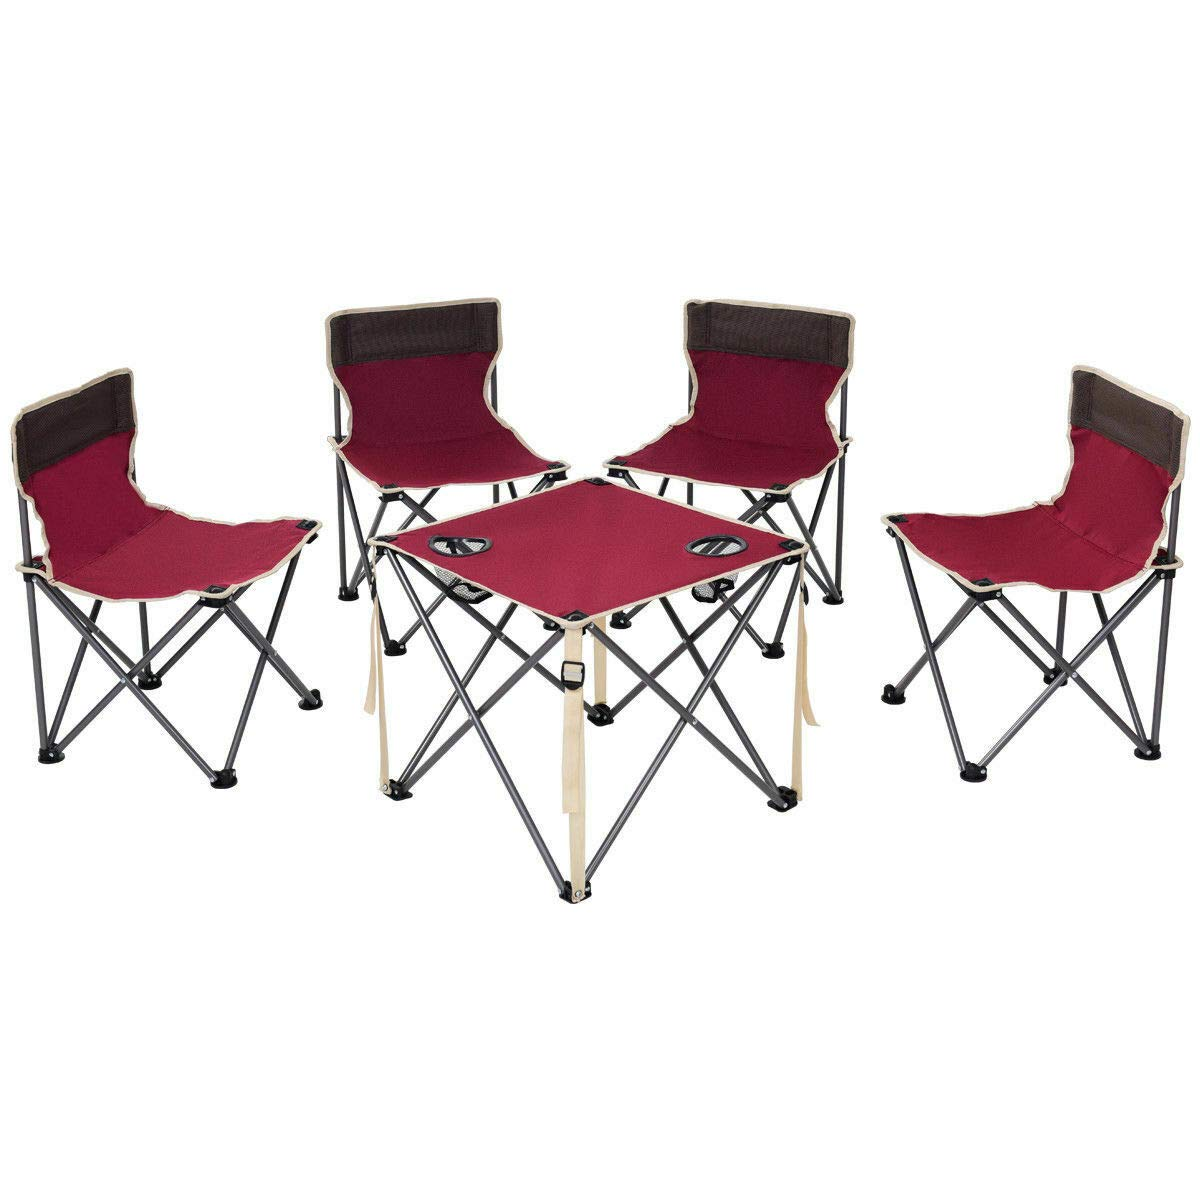 ANA Store Vacations Cookout Party Curl Stand Metal Iron Stell Frame Red Oxford Fabric Portable Folding Table Chairs Set Inside Outside Camp Beach Picnic with Carrying Bag by ANA Store (Image #1)